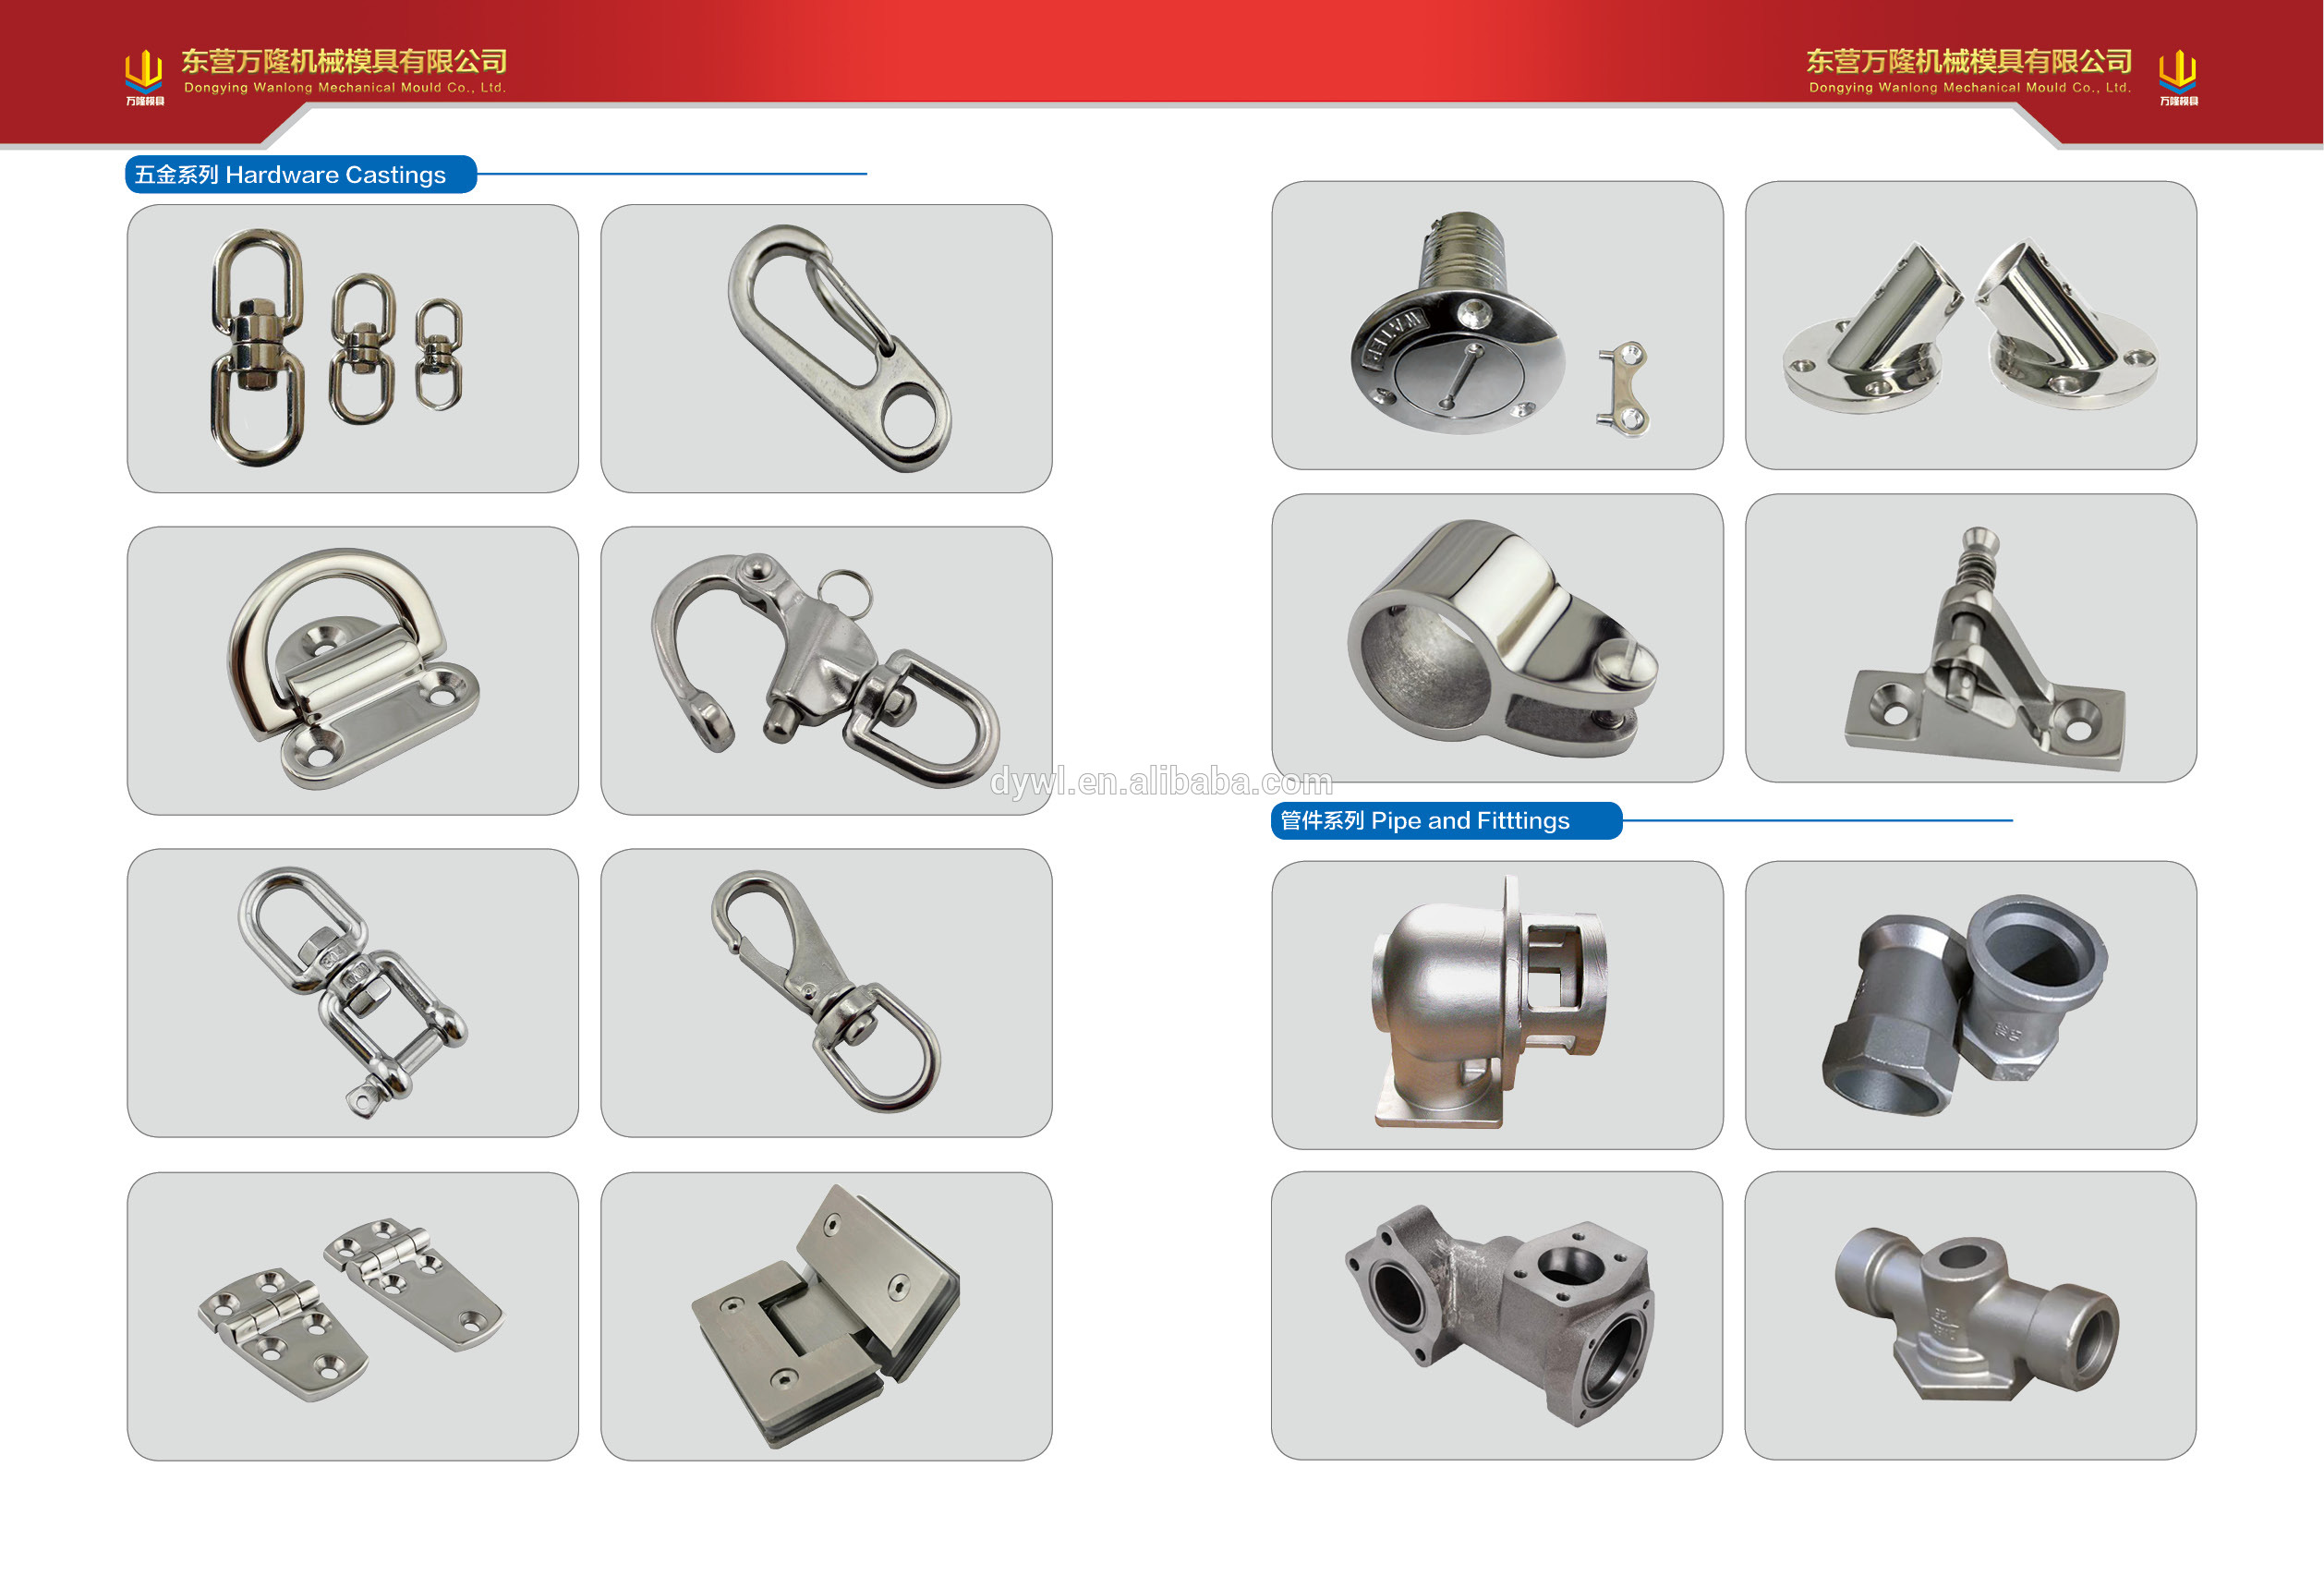 investment casting lost wax casting hardware fastner clip hook